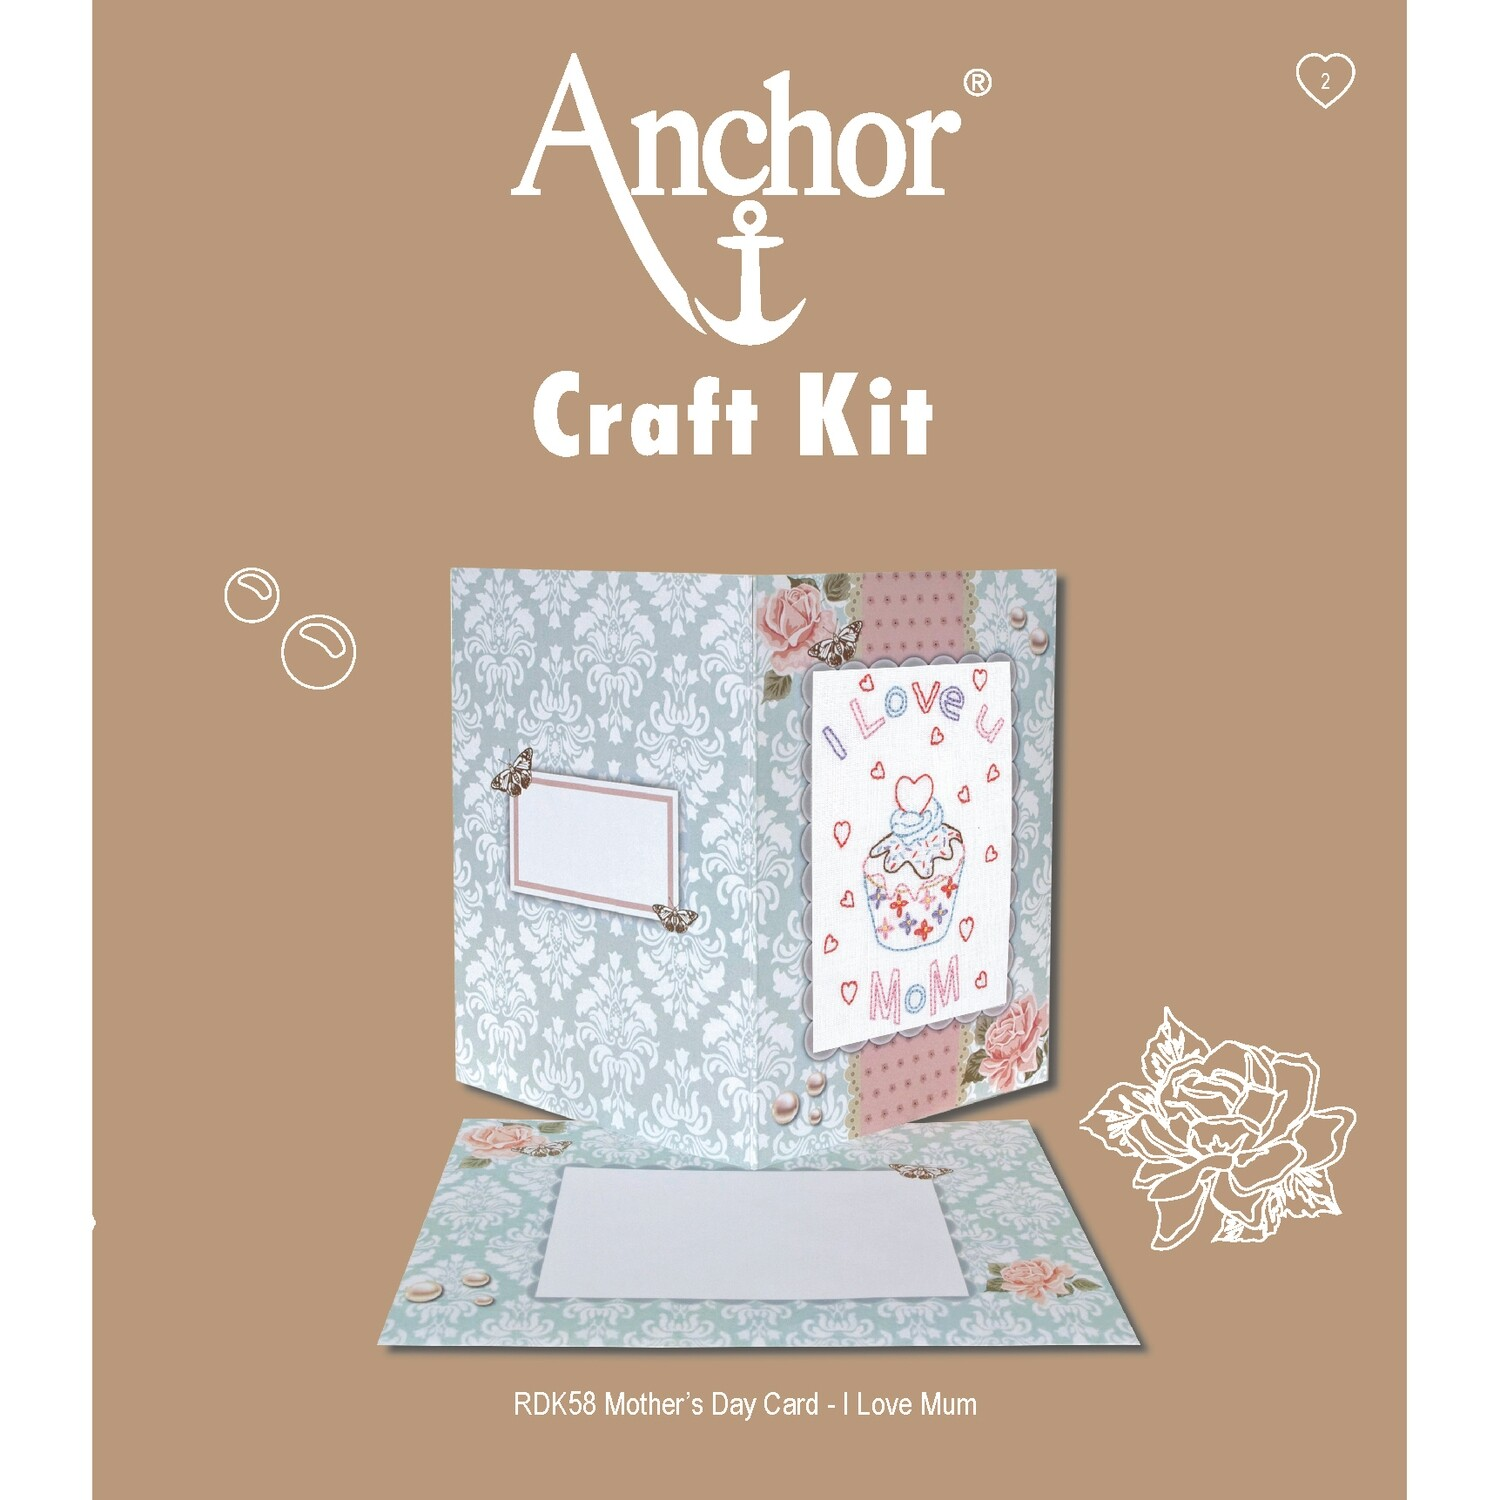 Anchor Craft Kit - I Love U Mom Card